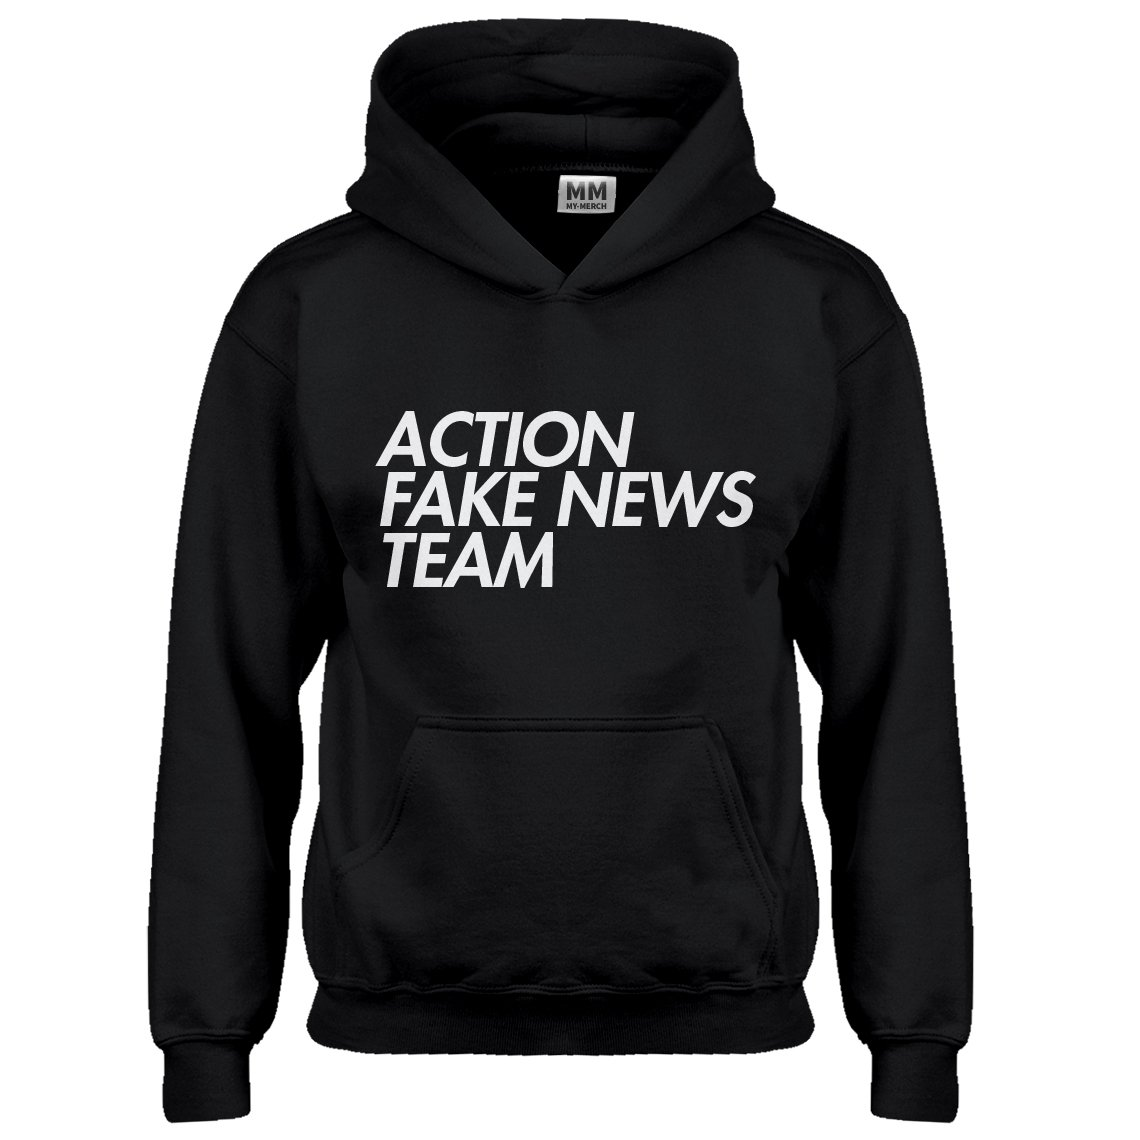 Indica Plateau Youth Action Fake News Team Kids Hoodie